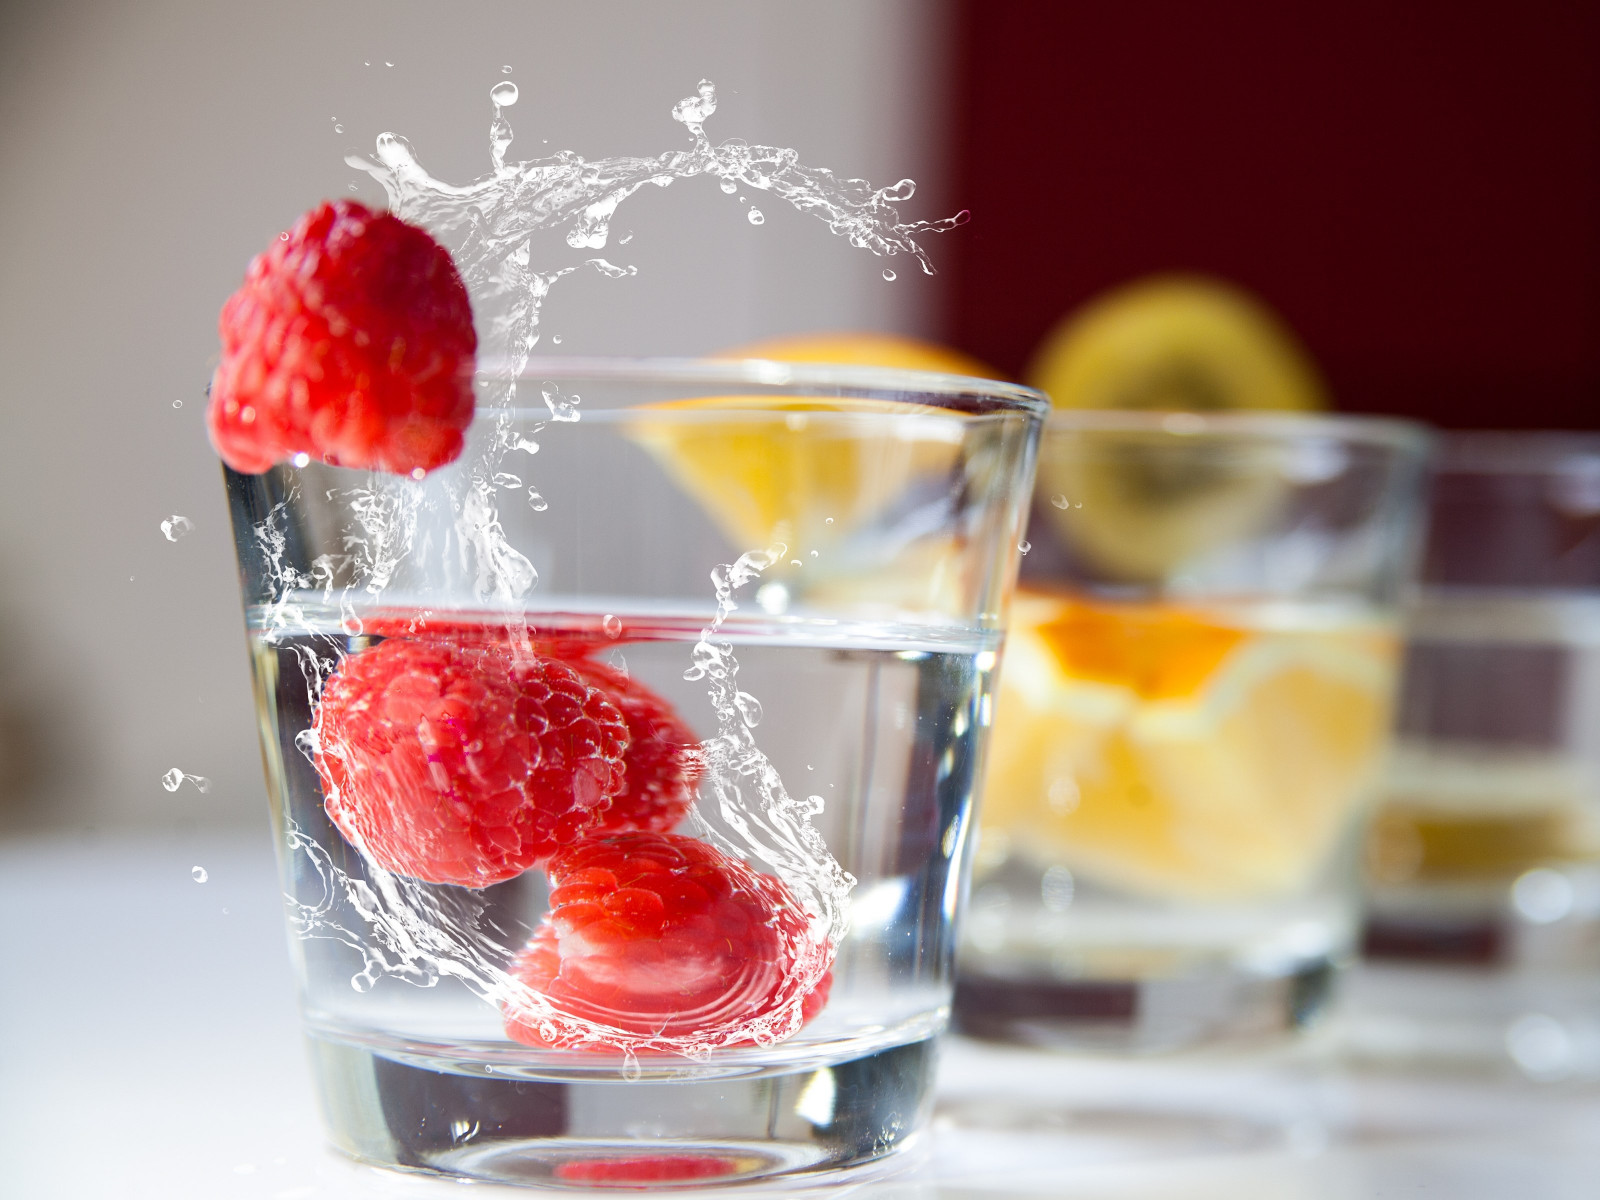 Raspberry and orange drinks wallpaper 1600x1200